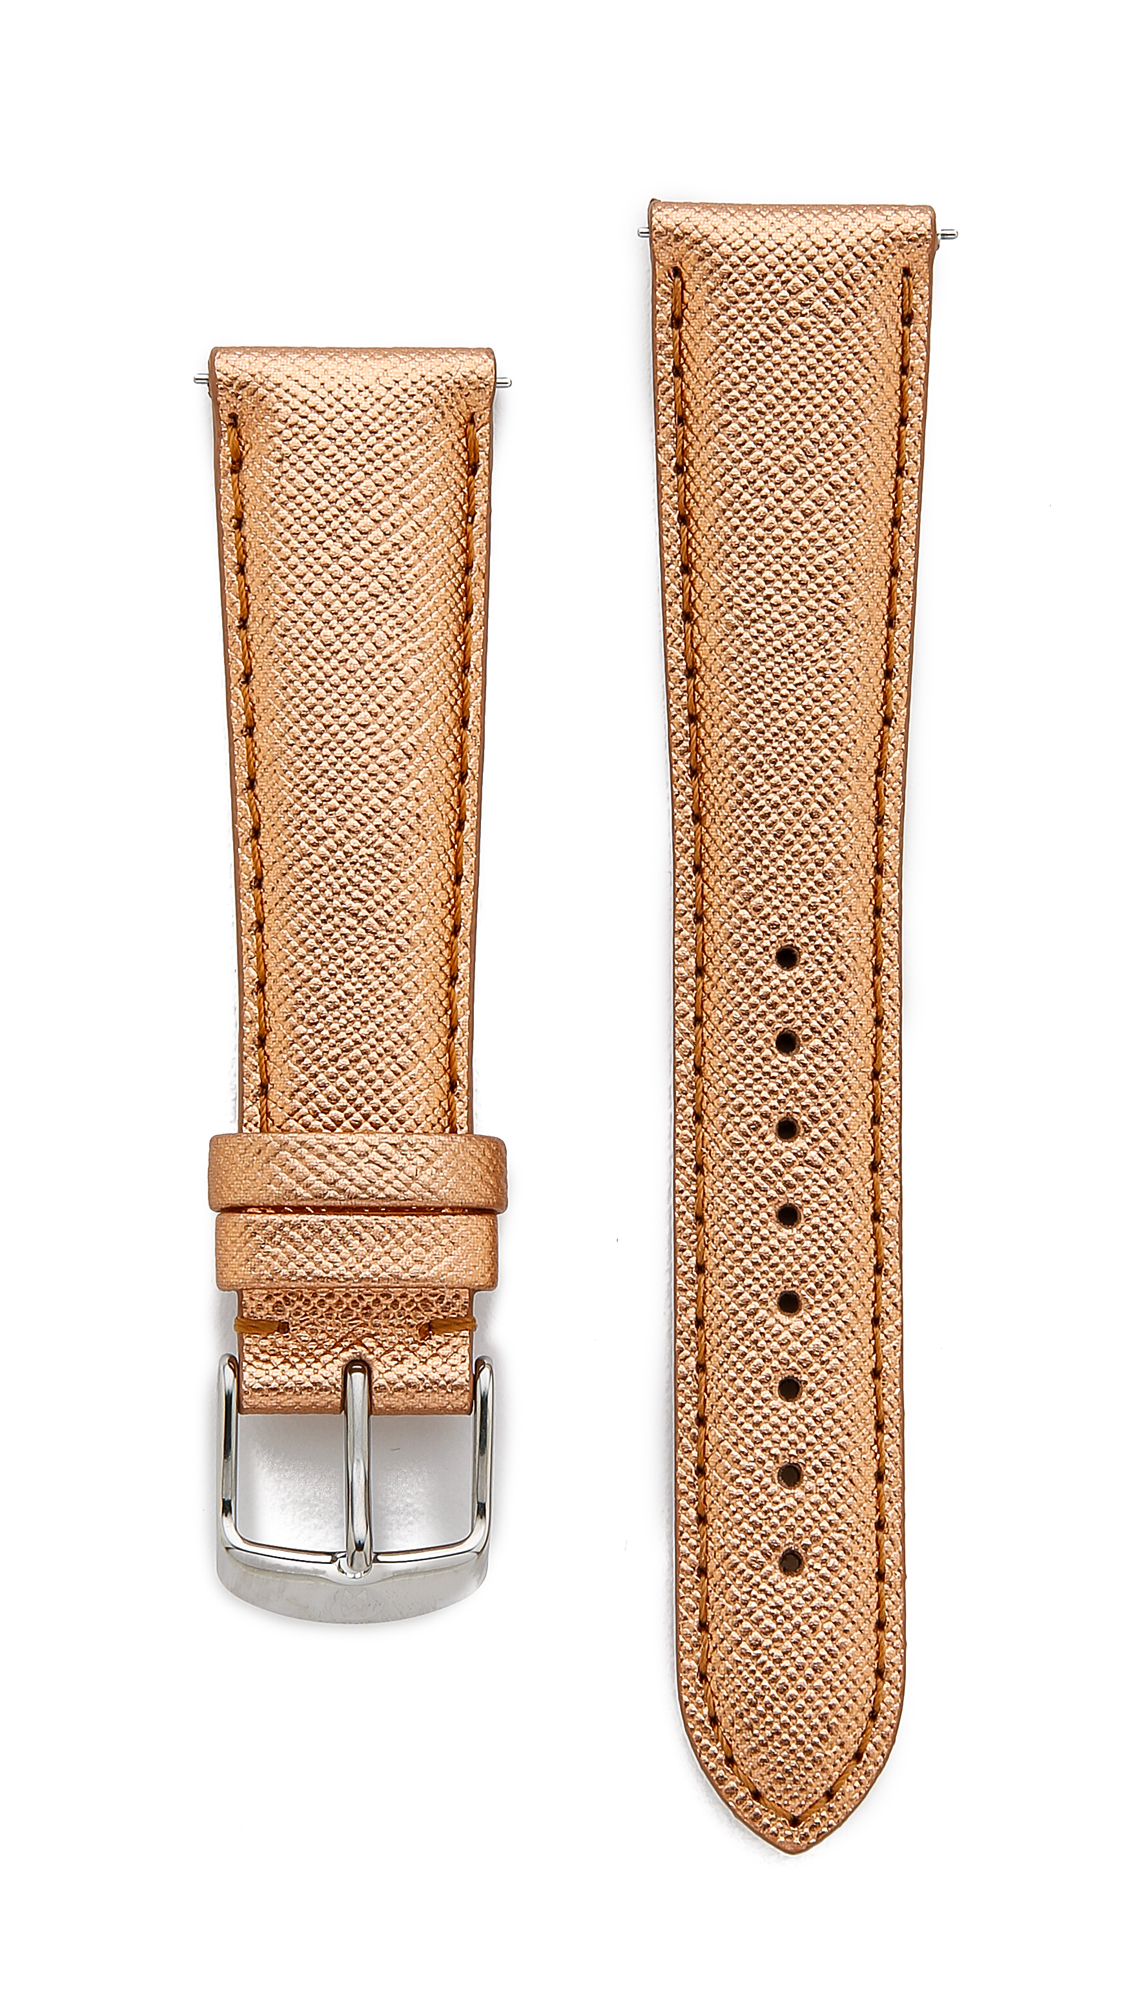 Michele 20mm Saffiano Leather Watch Strap Rose Gold In